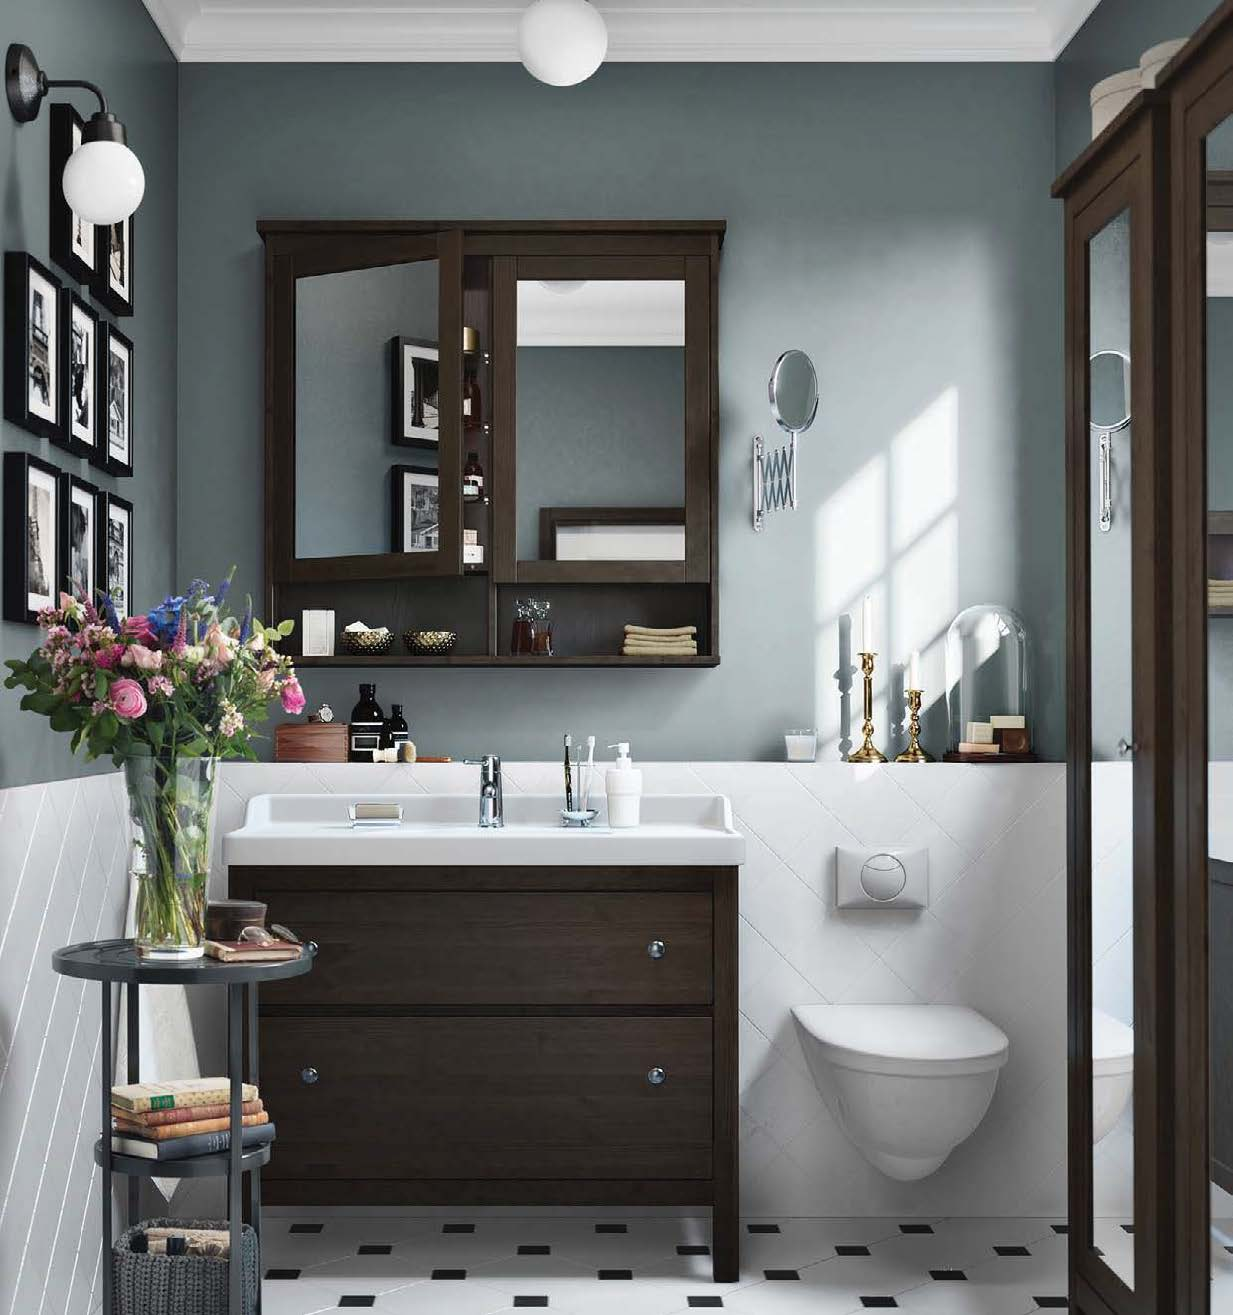 Ikea 2016 catalog for Ikea bathroom design